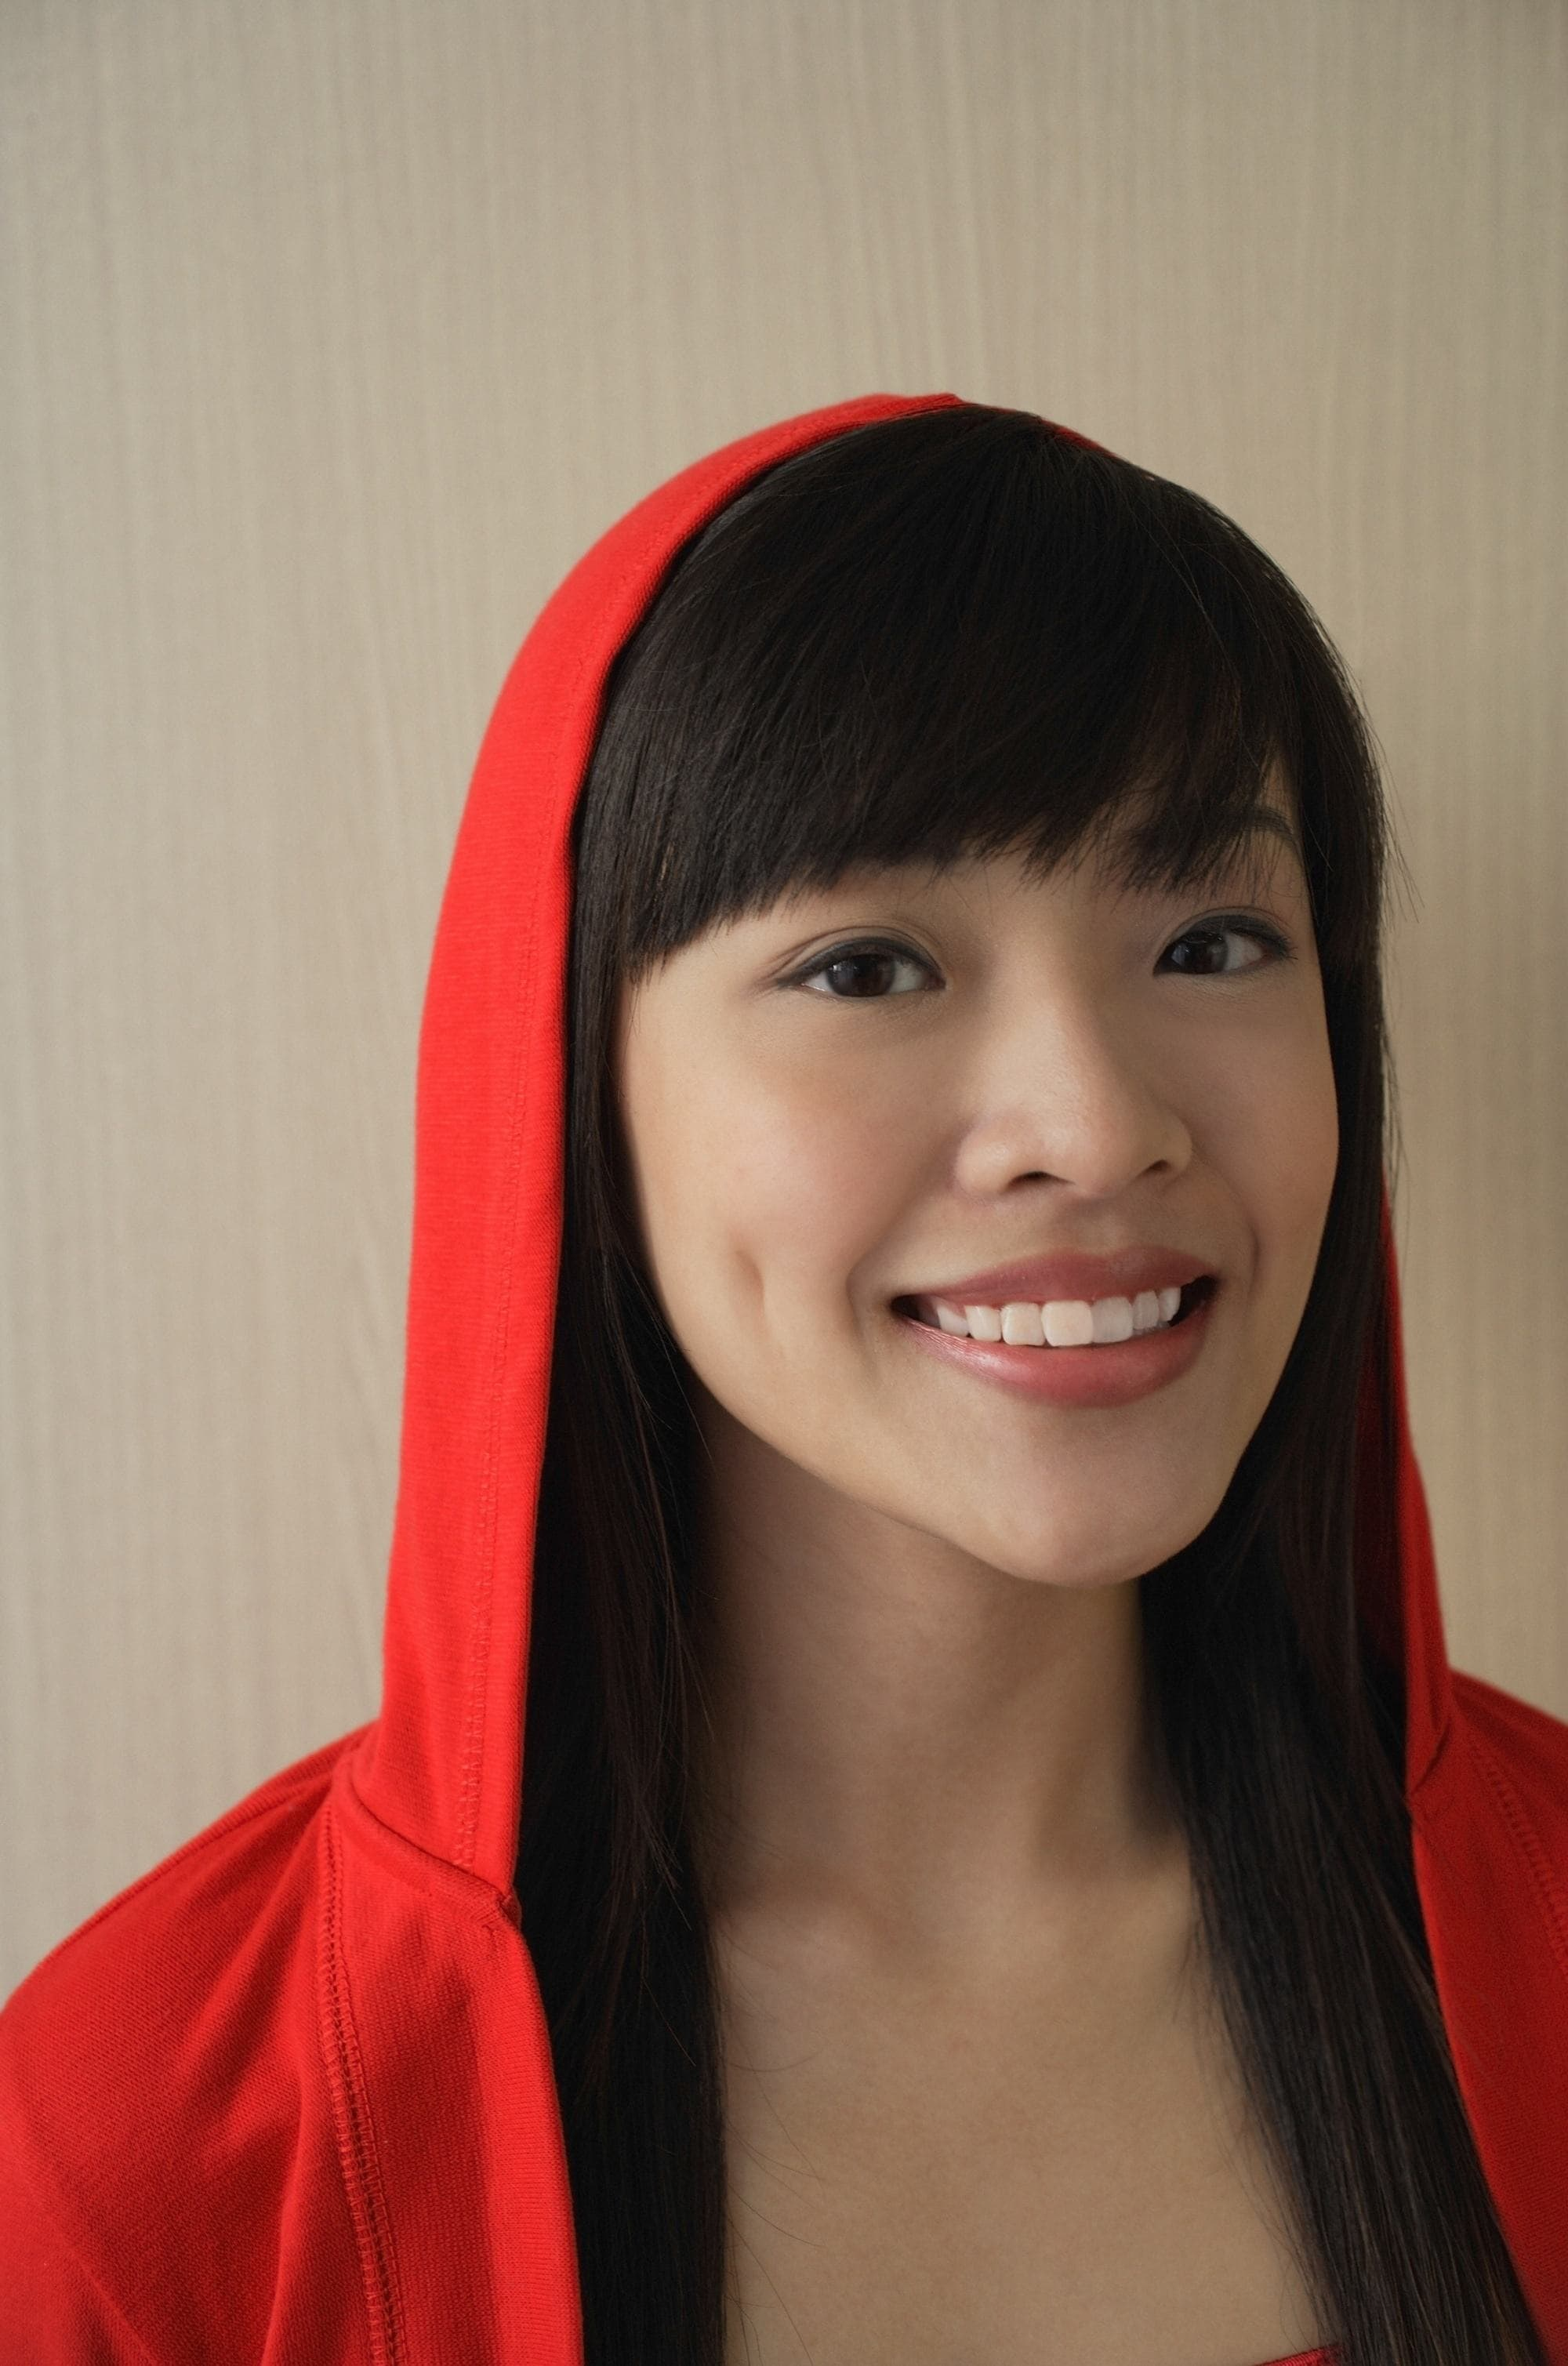 Asian woman with black hair and wispy bangs, wearing a red hoodie